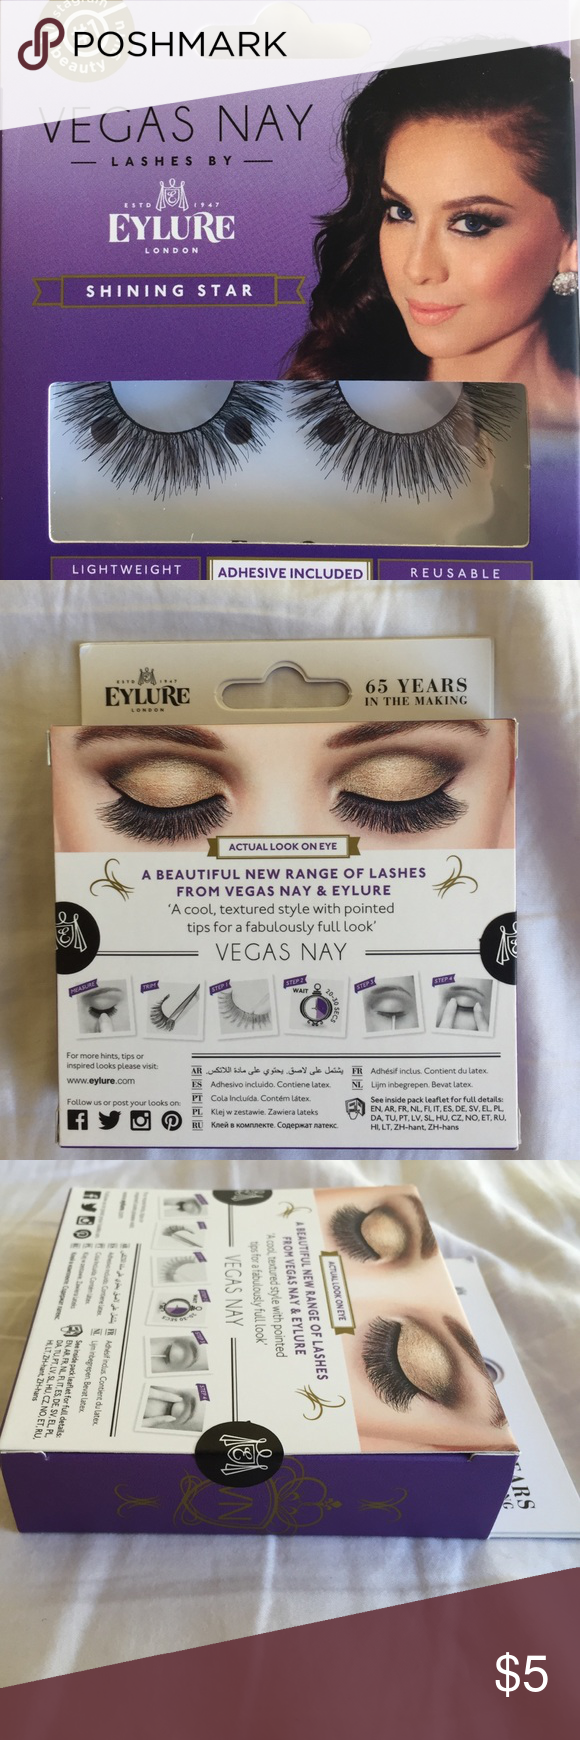 c390da4ab70 Vegas Nay Shining Star Lashes Shining Star is a cool, textured style with  pointed tips